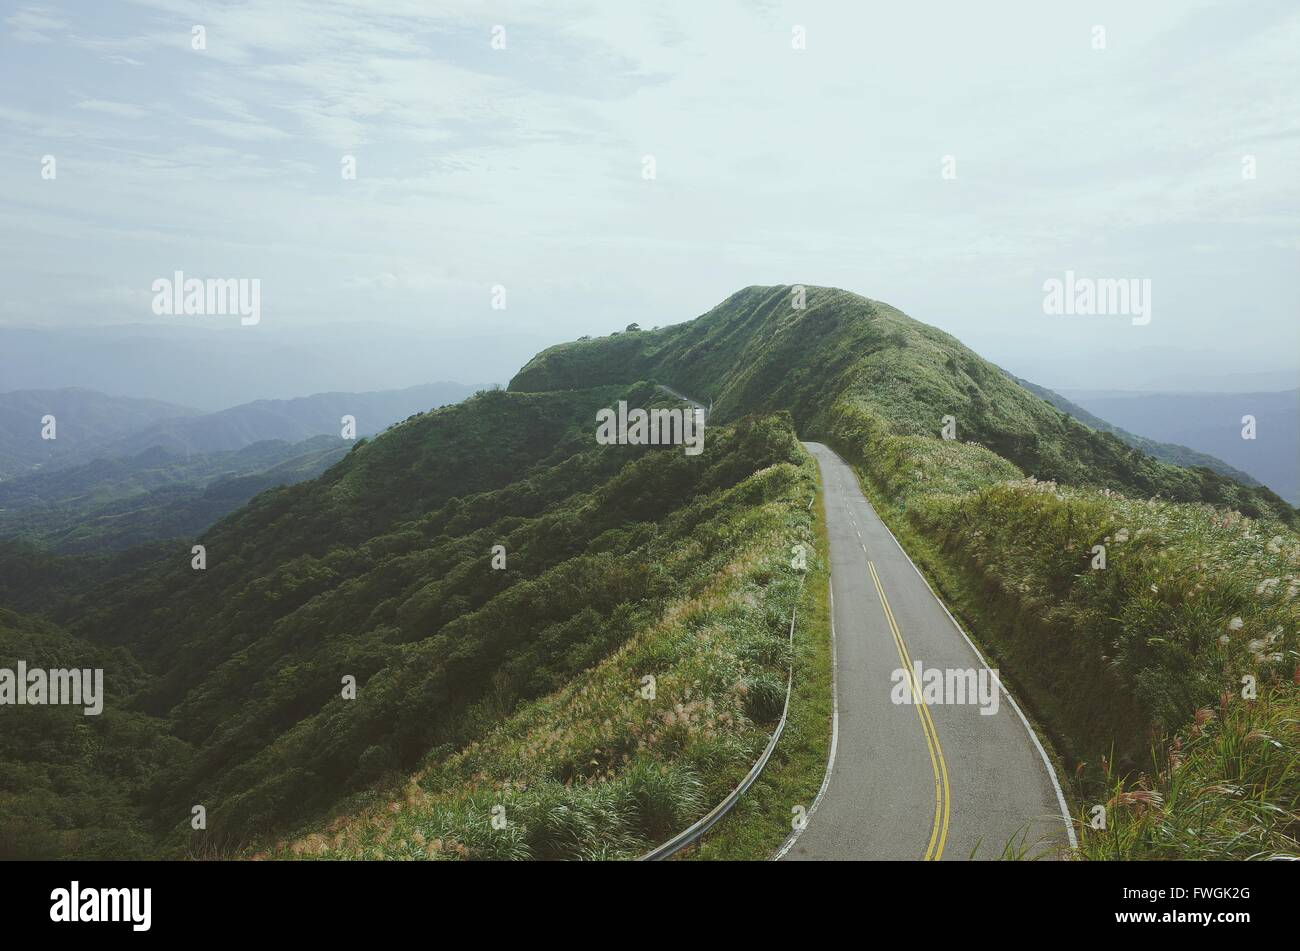 Country Road Against Cloudy Sky - Stock Image